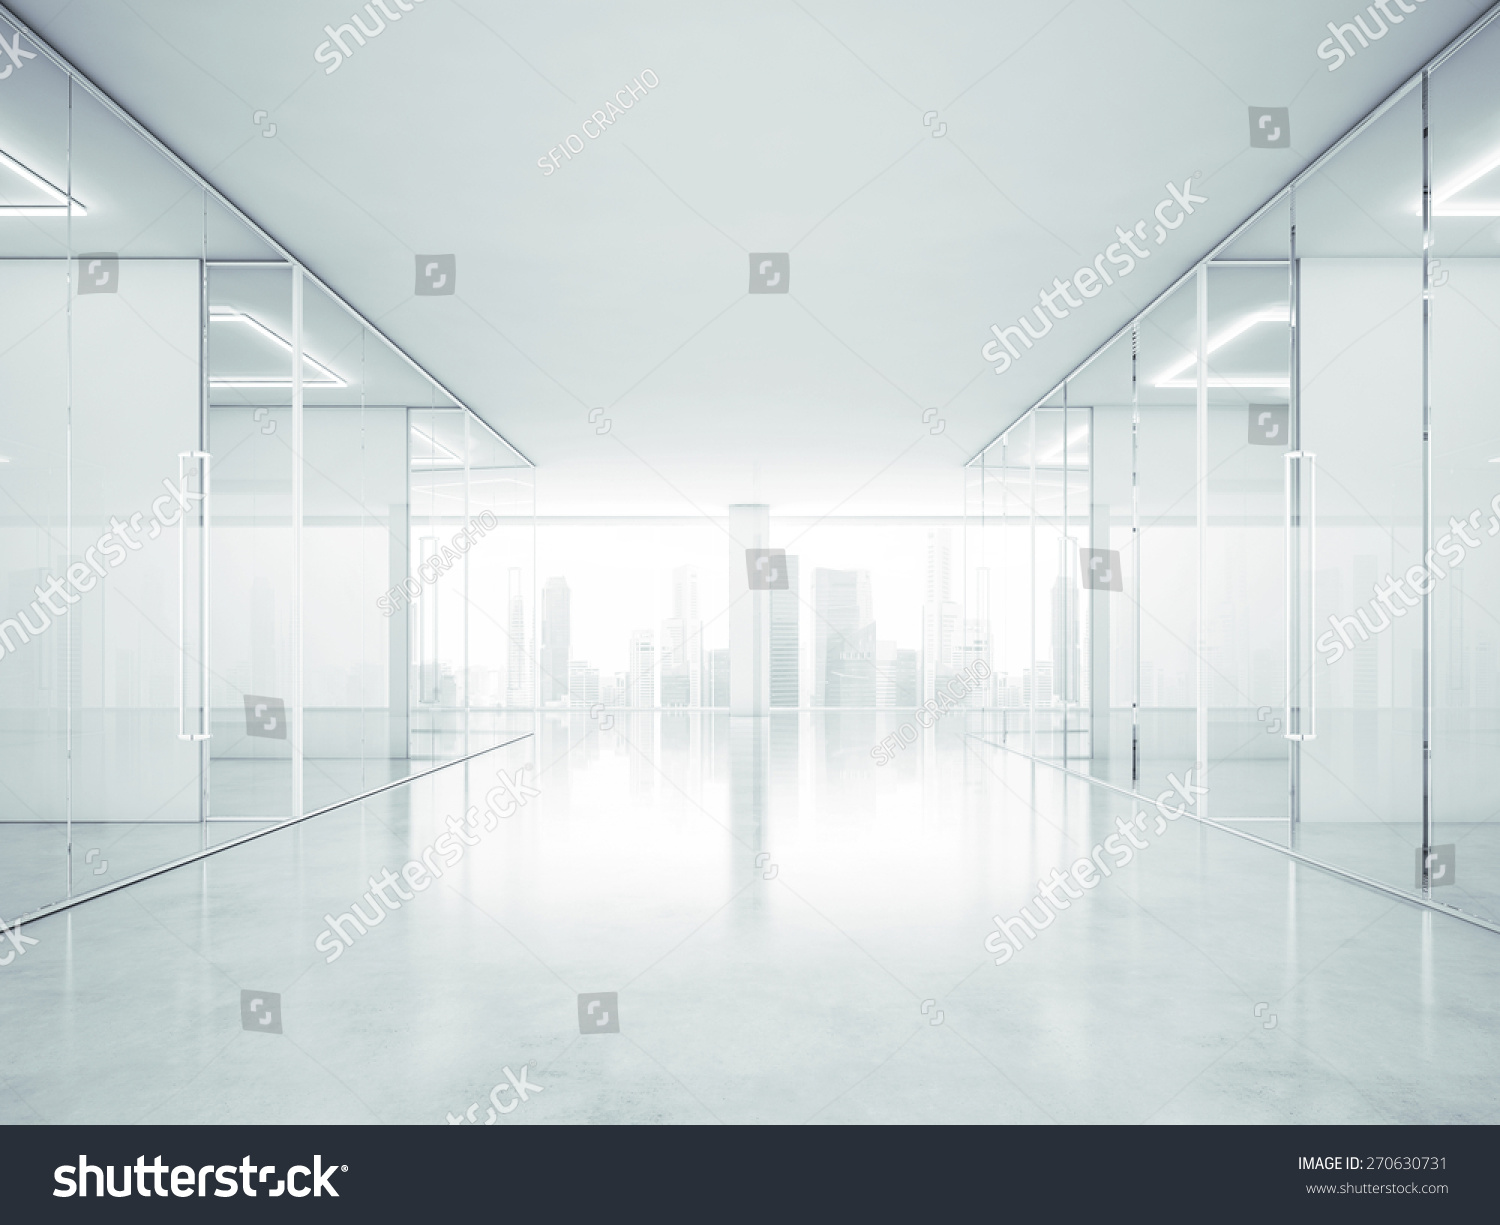 Interior office windows - White Office Interior With Panoramic Windows 3d Rendering